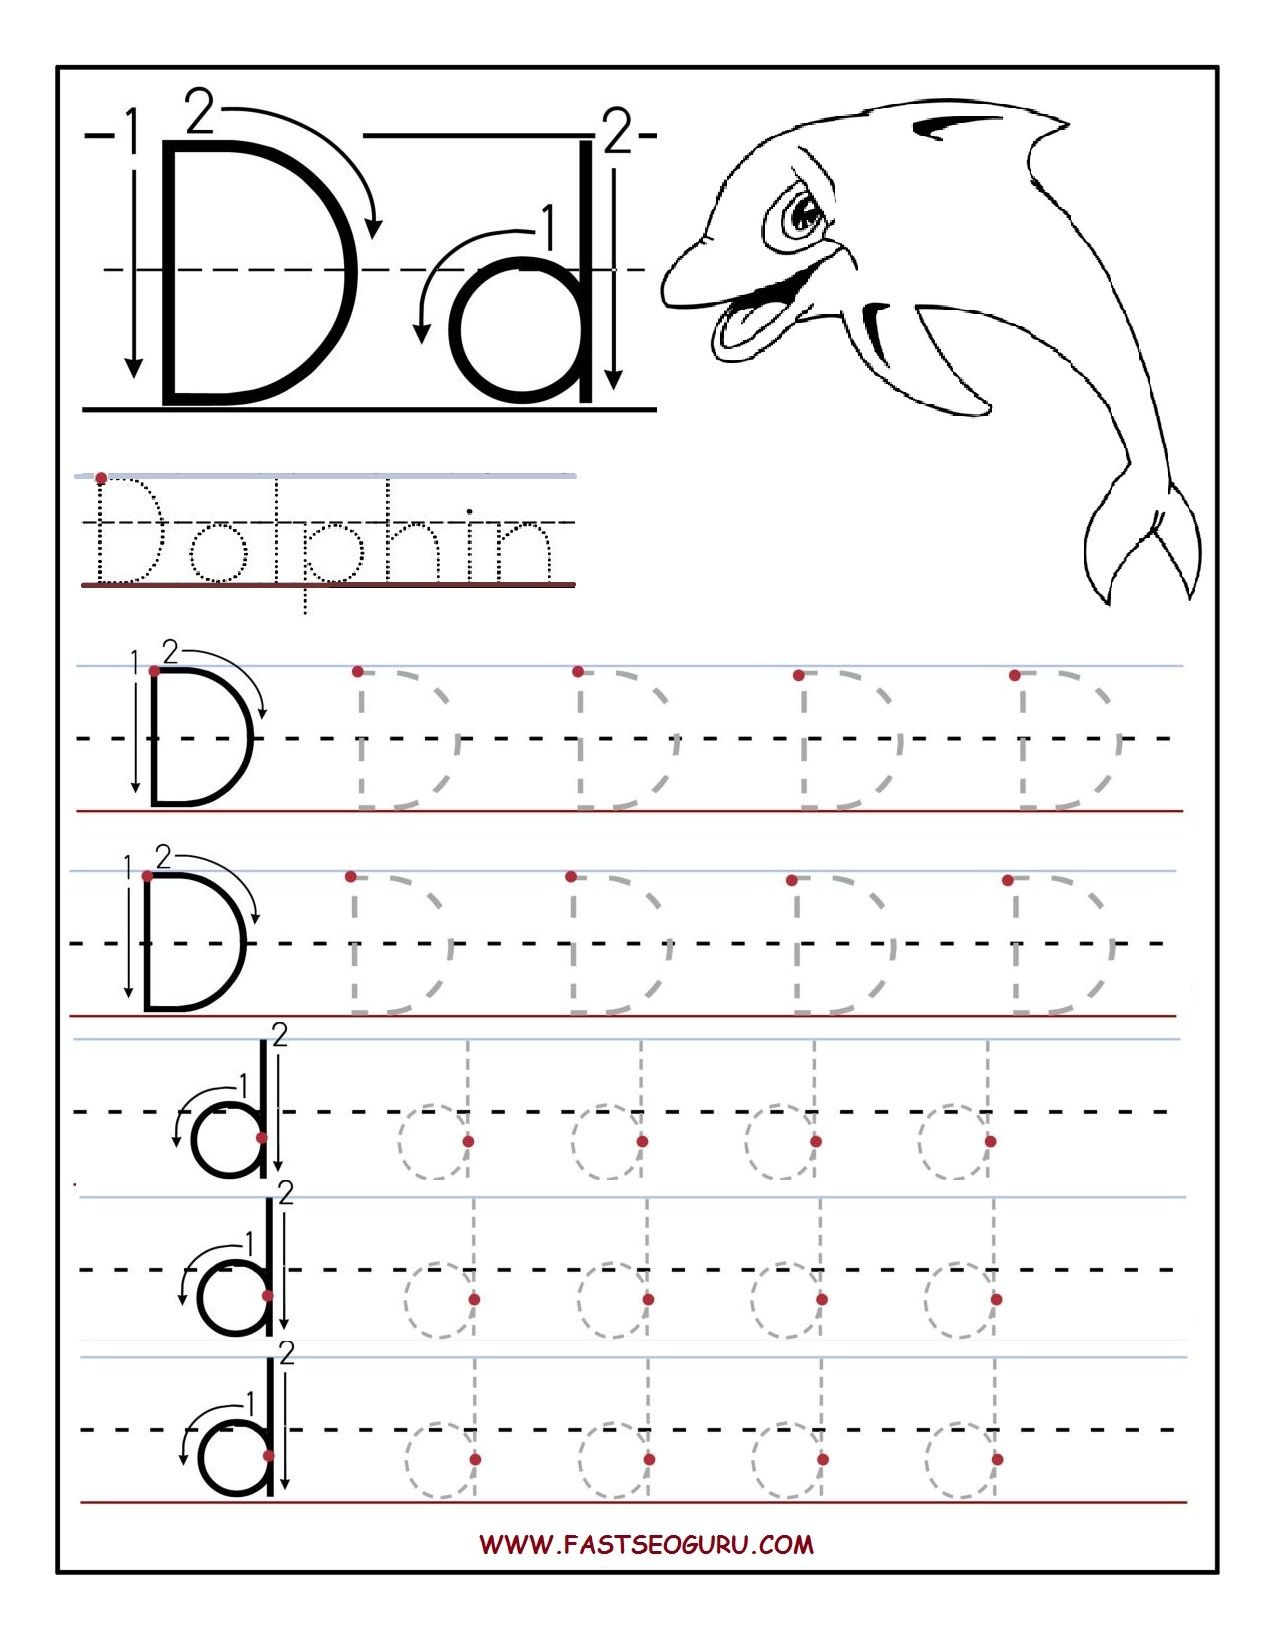 Worksheets Letter D Worksheets worksheets for preschoolers printable letter d tracing preschool